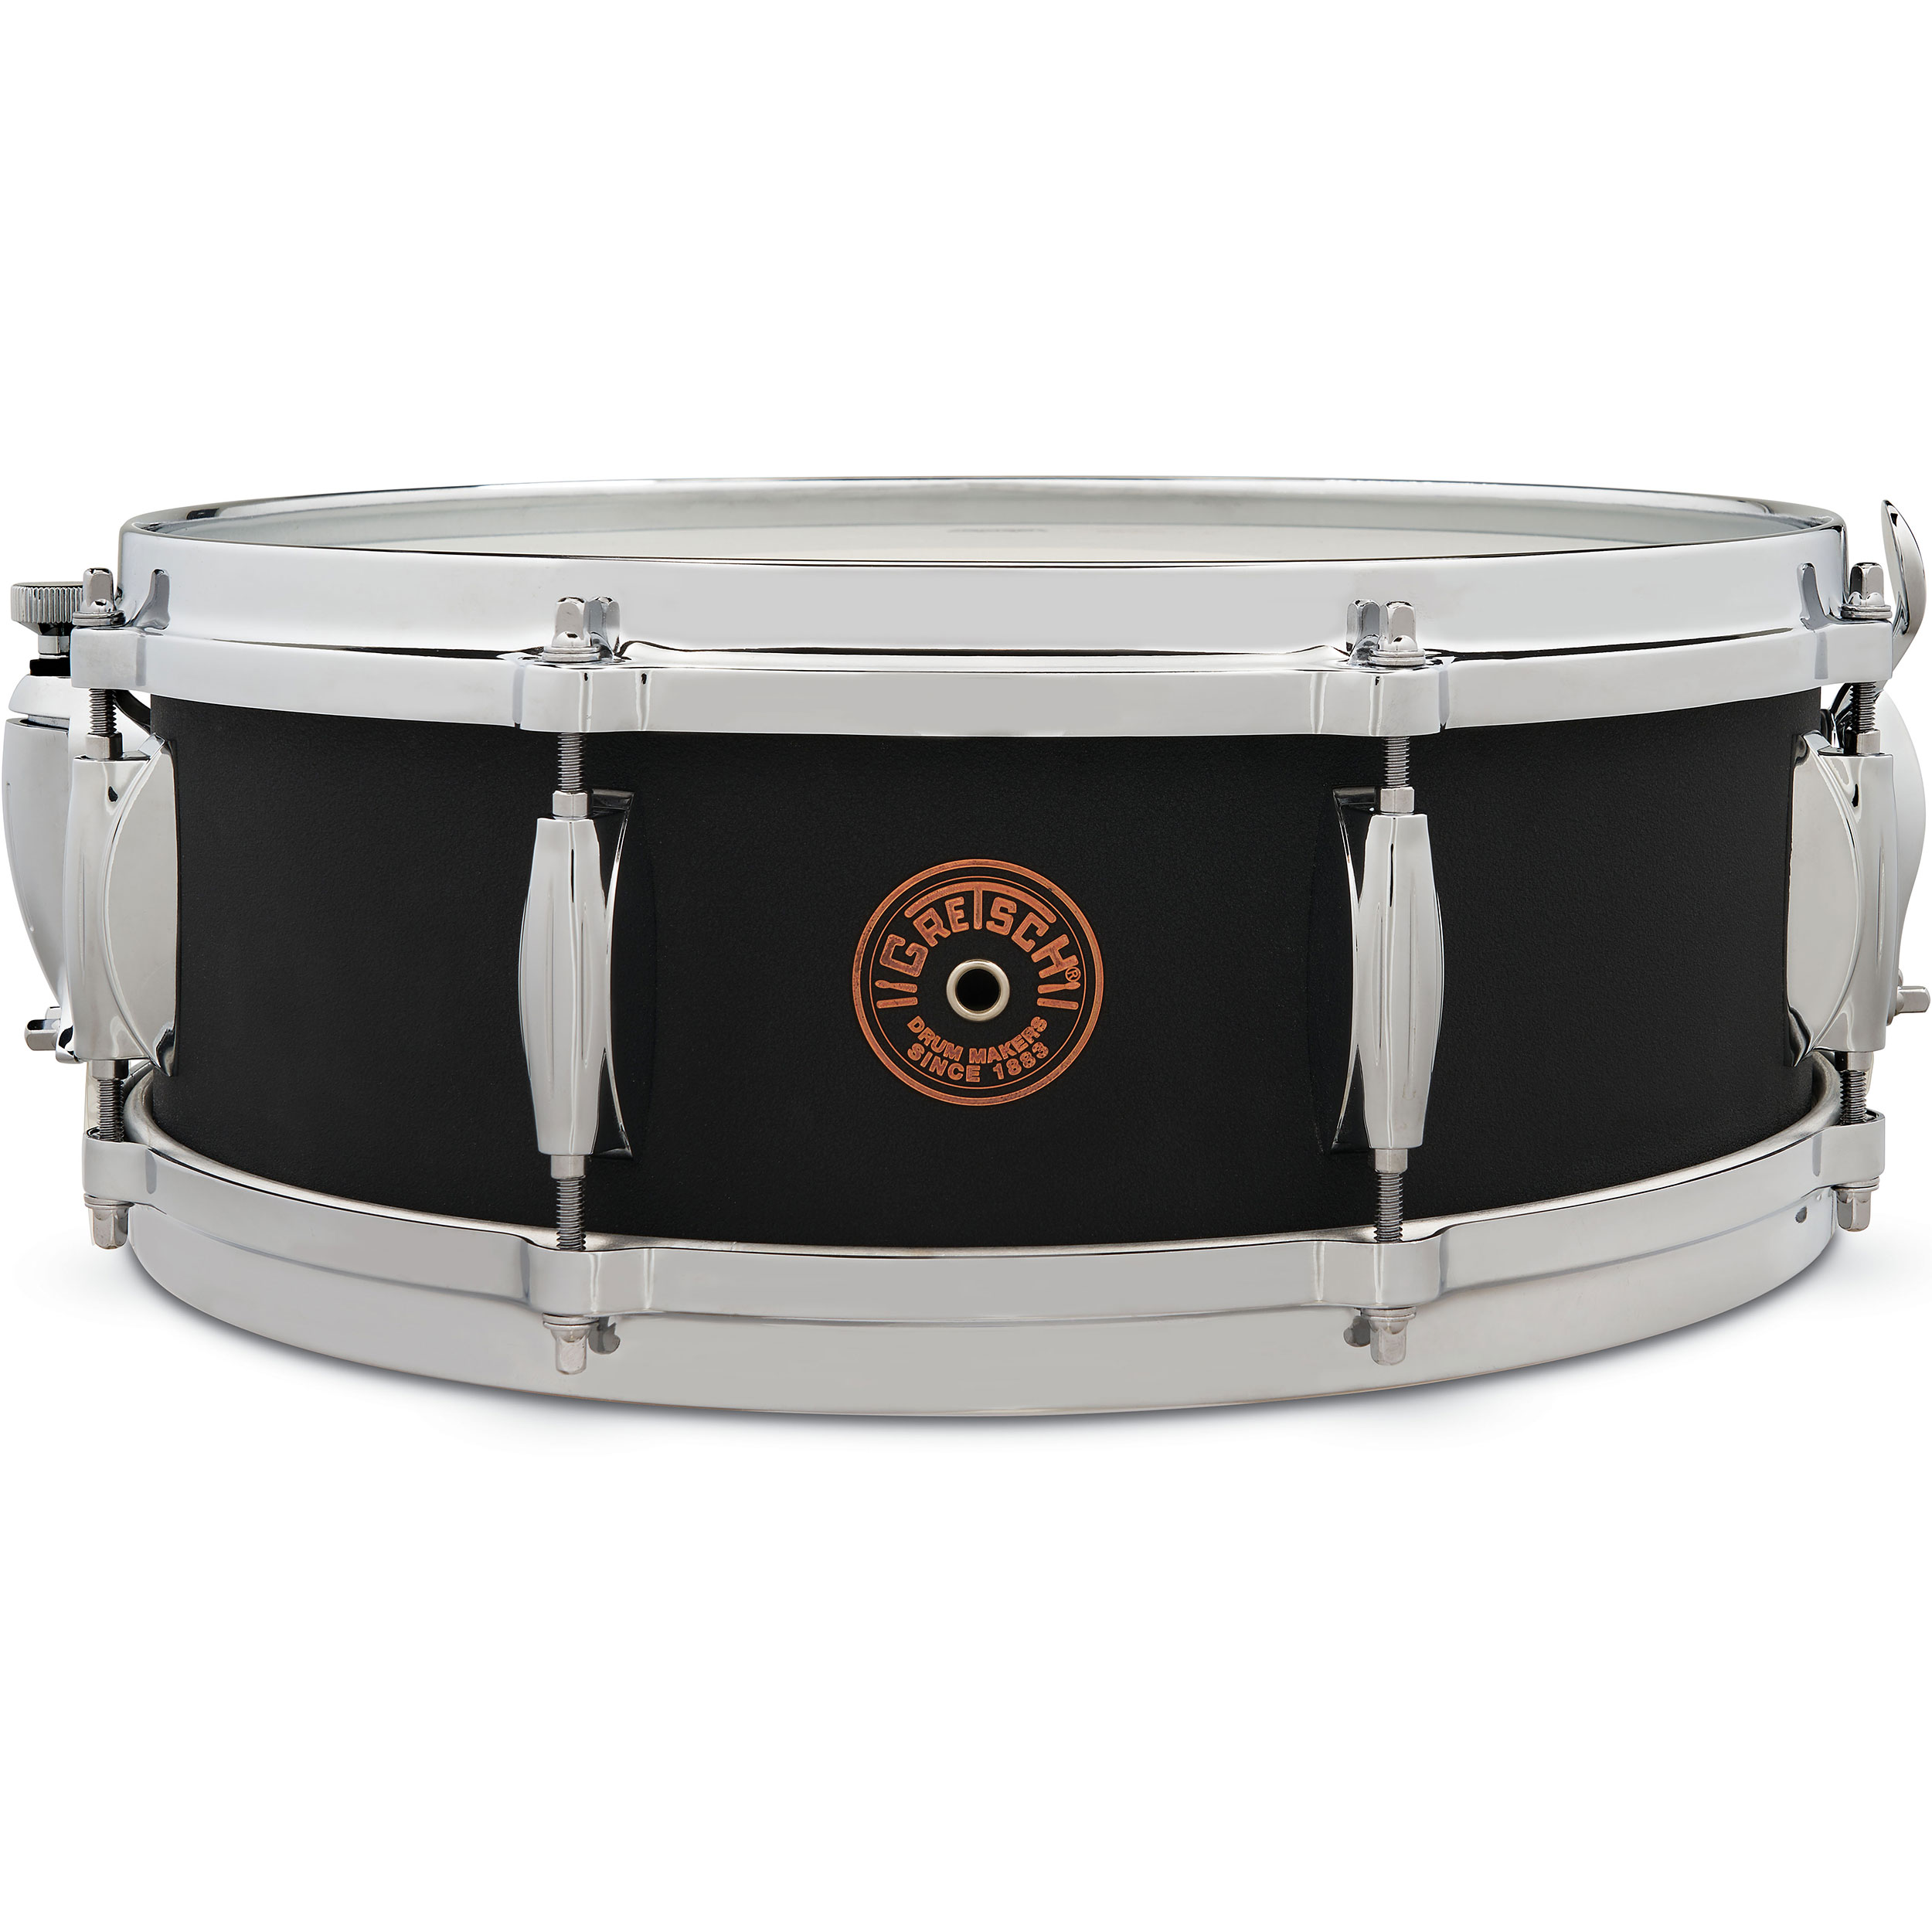 "Gretsch 5"" x 14"" Black Copper Round Badge Exclusive Snare Drum"